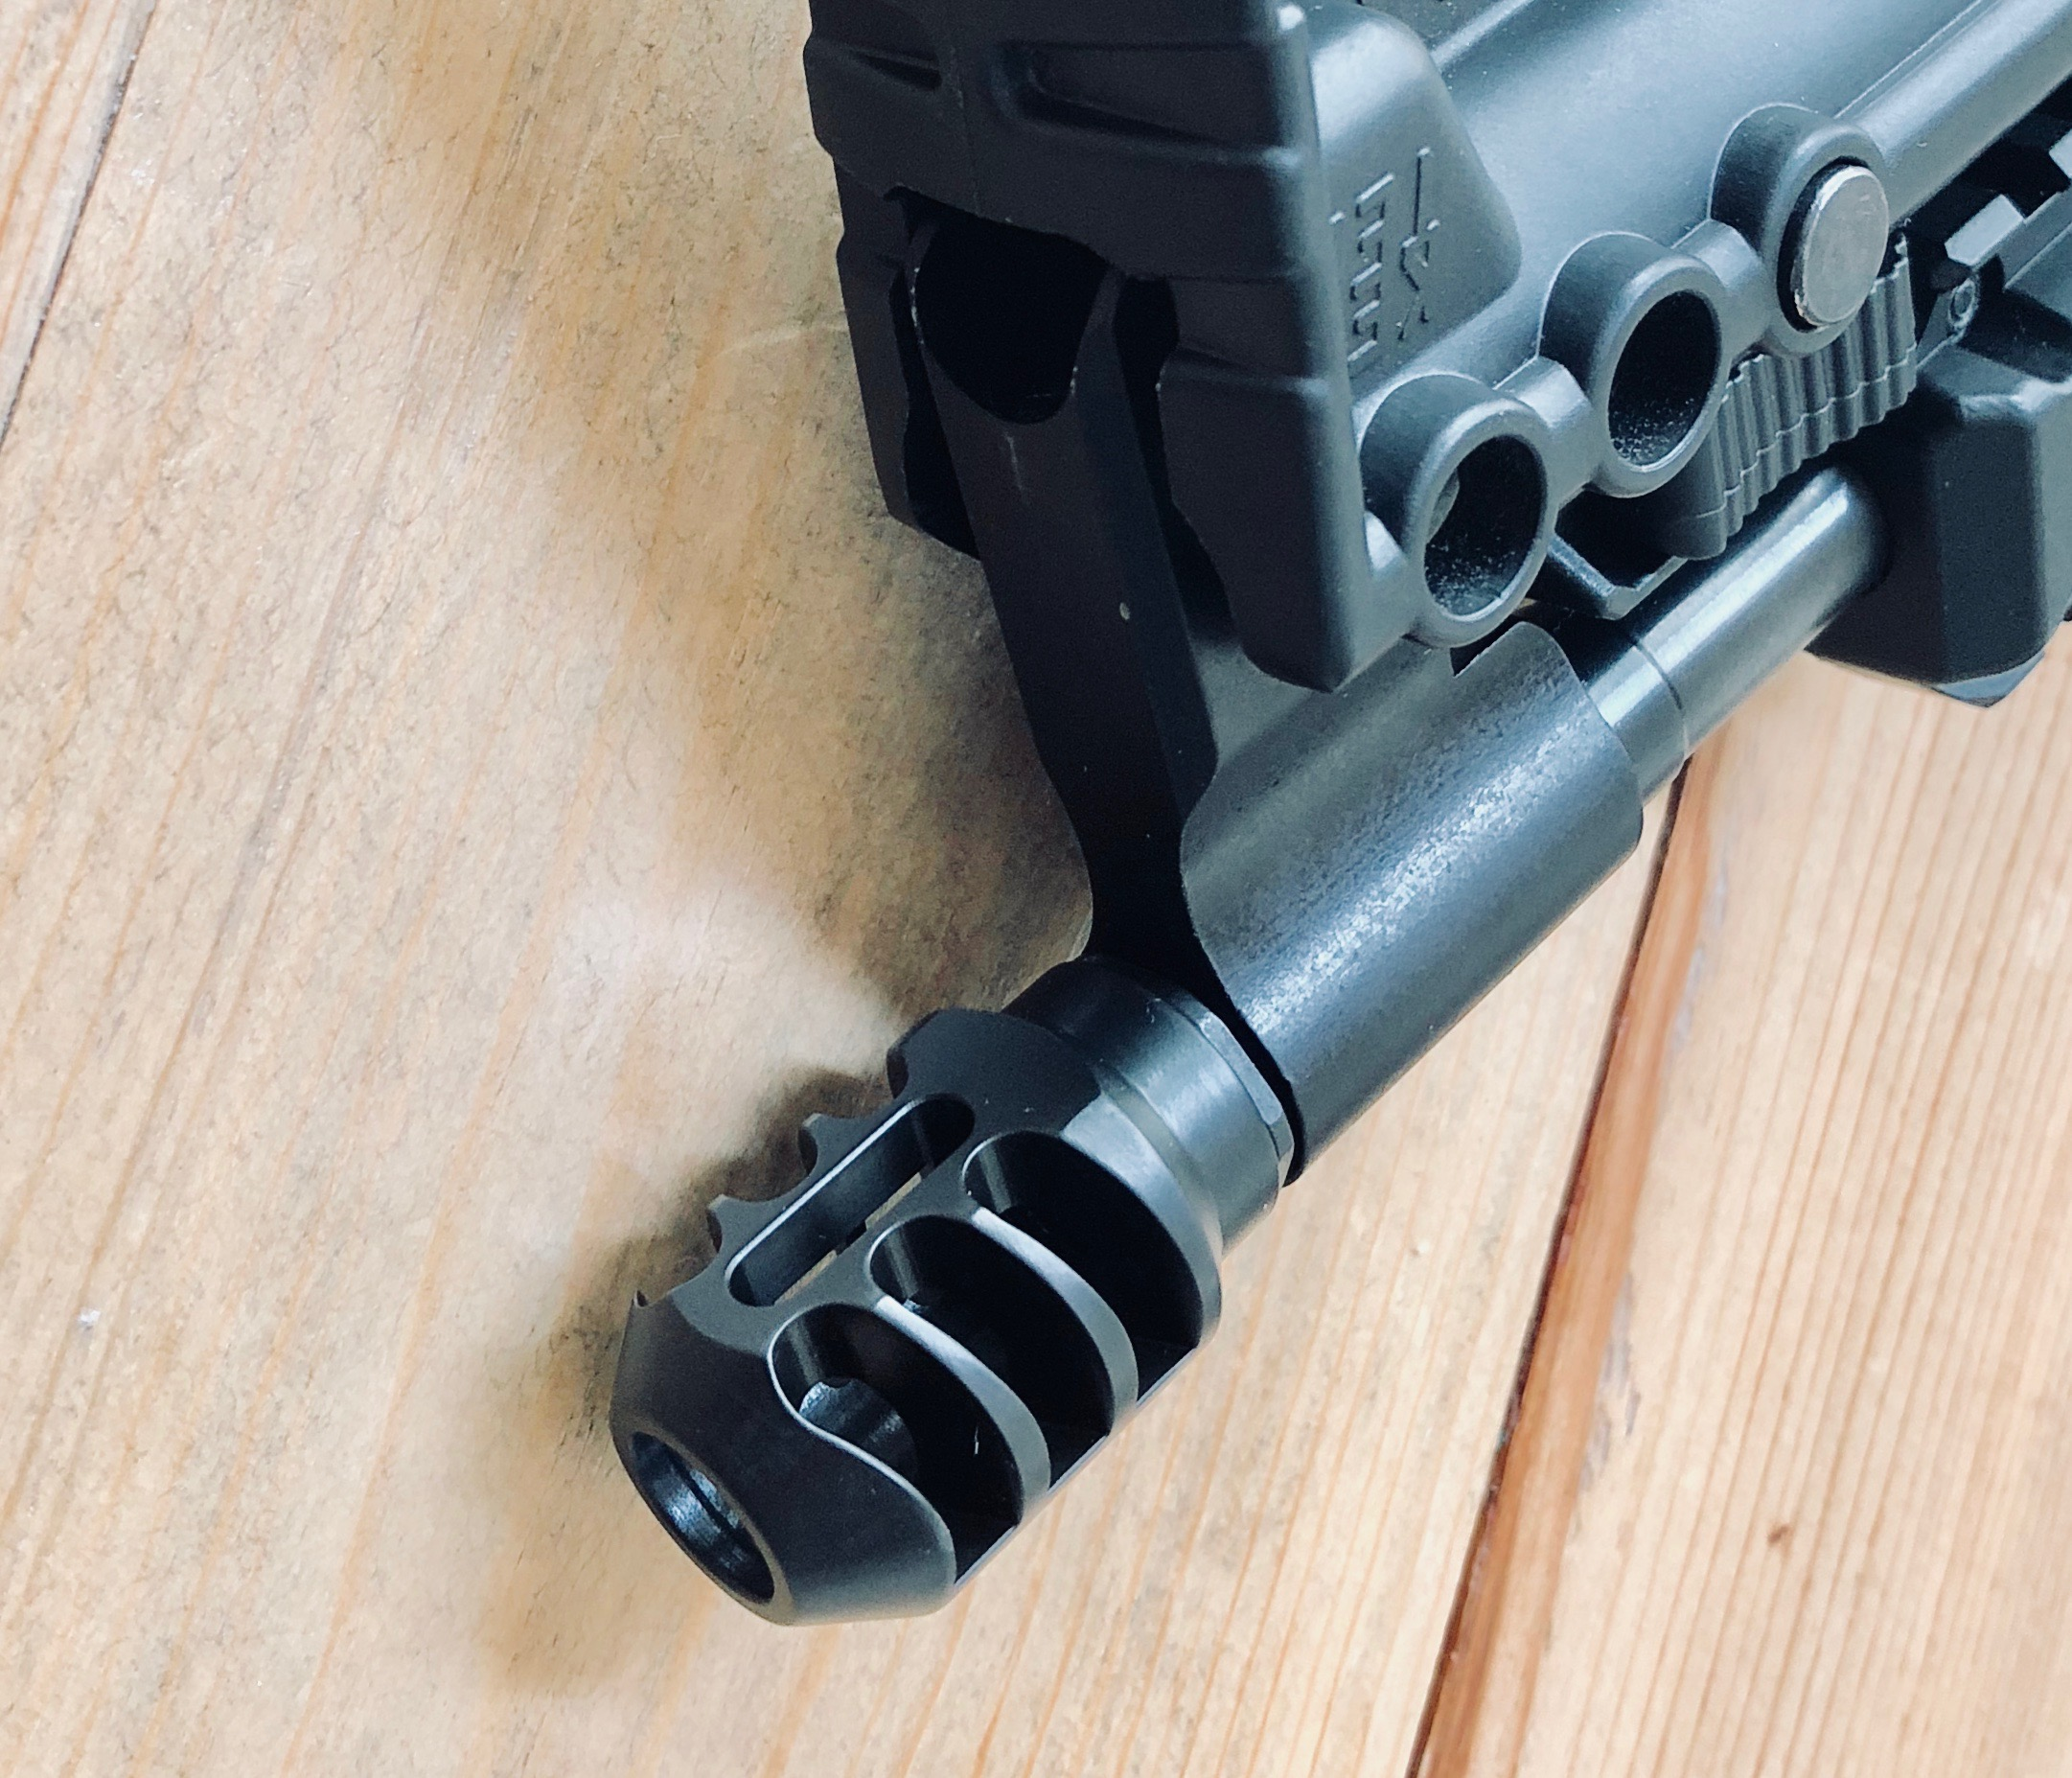 Take your Kel-Tec Sub 2000 to another level   M*CARBO Muzzle Brake